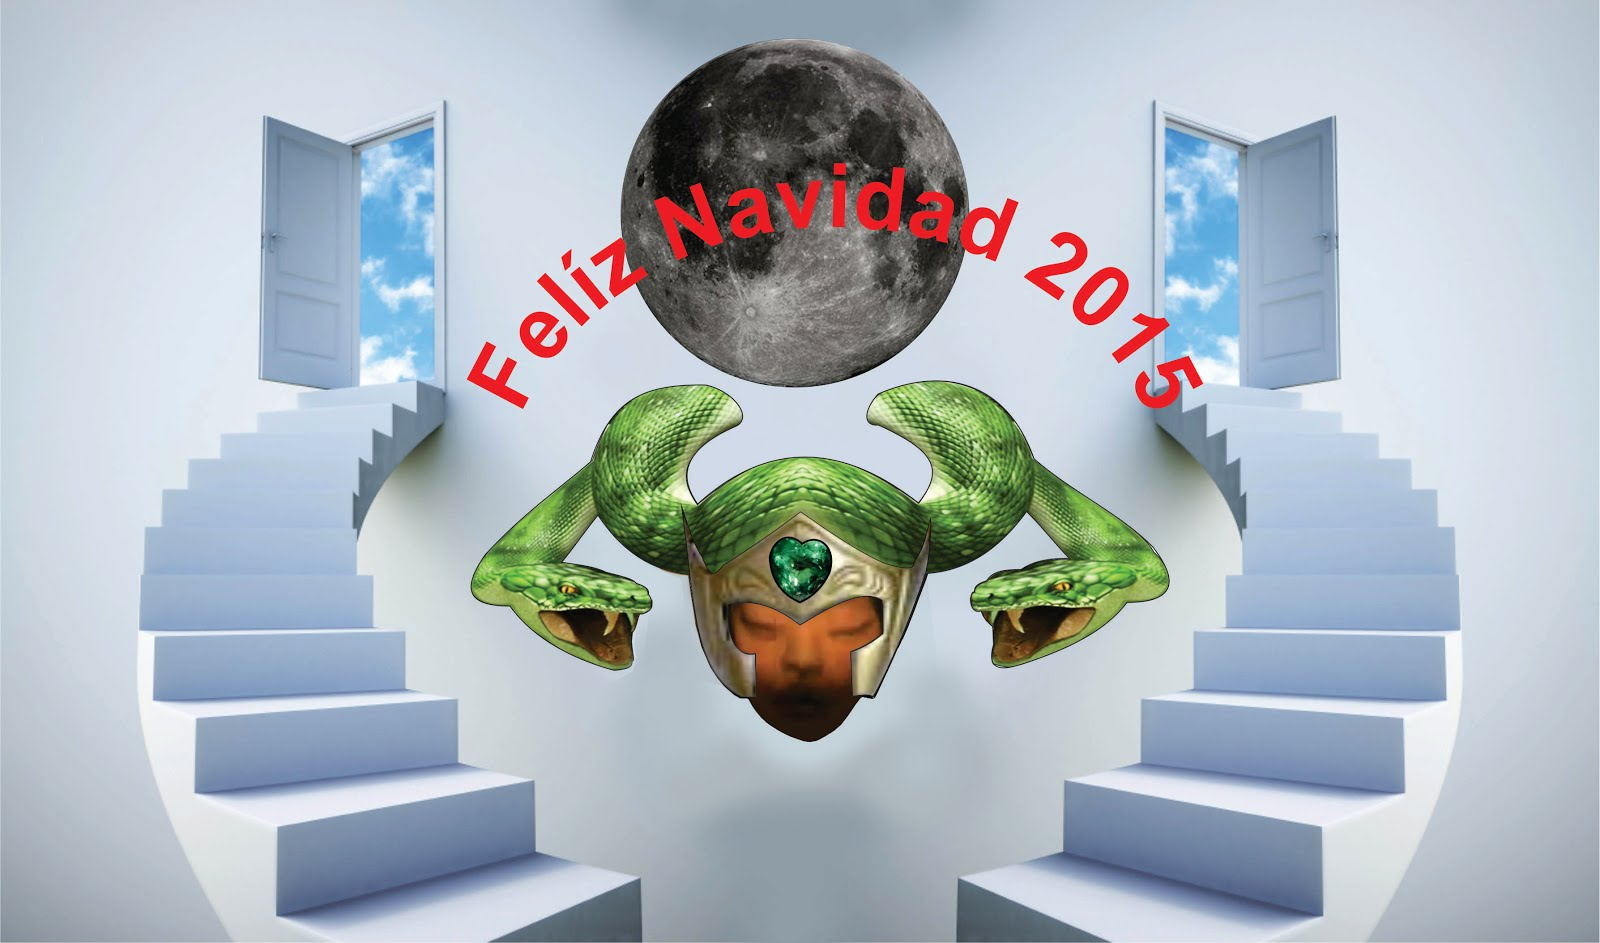 ¡FELÍZ NAVIDAD 2015!